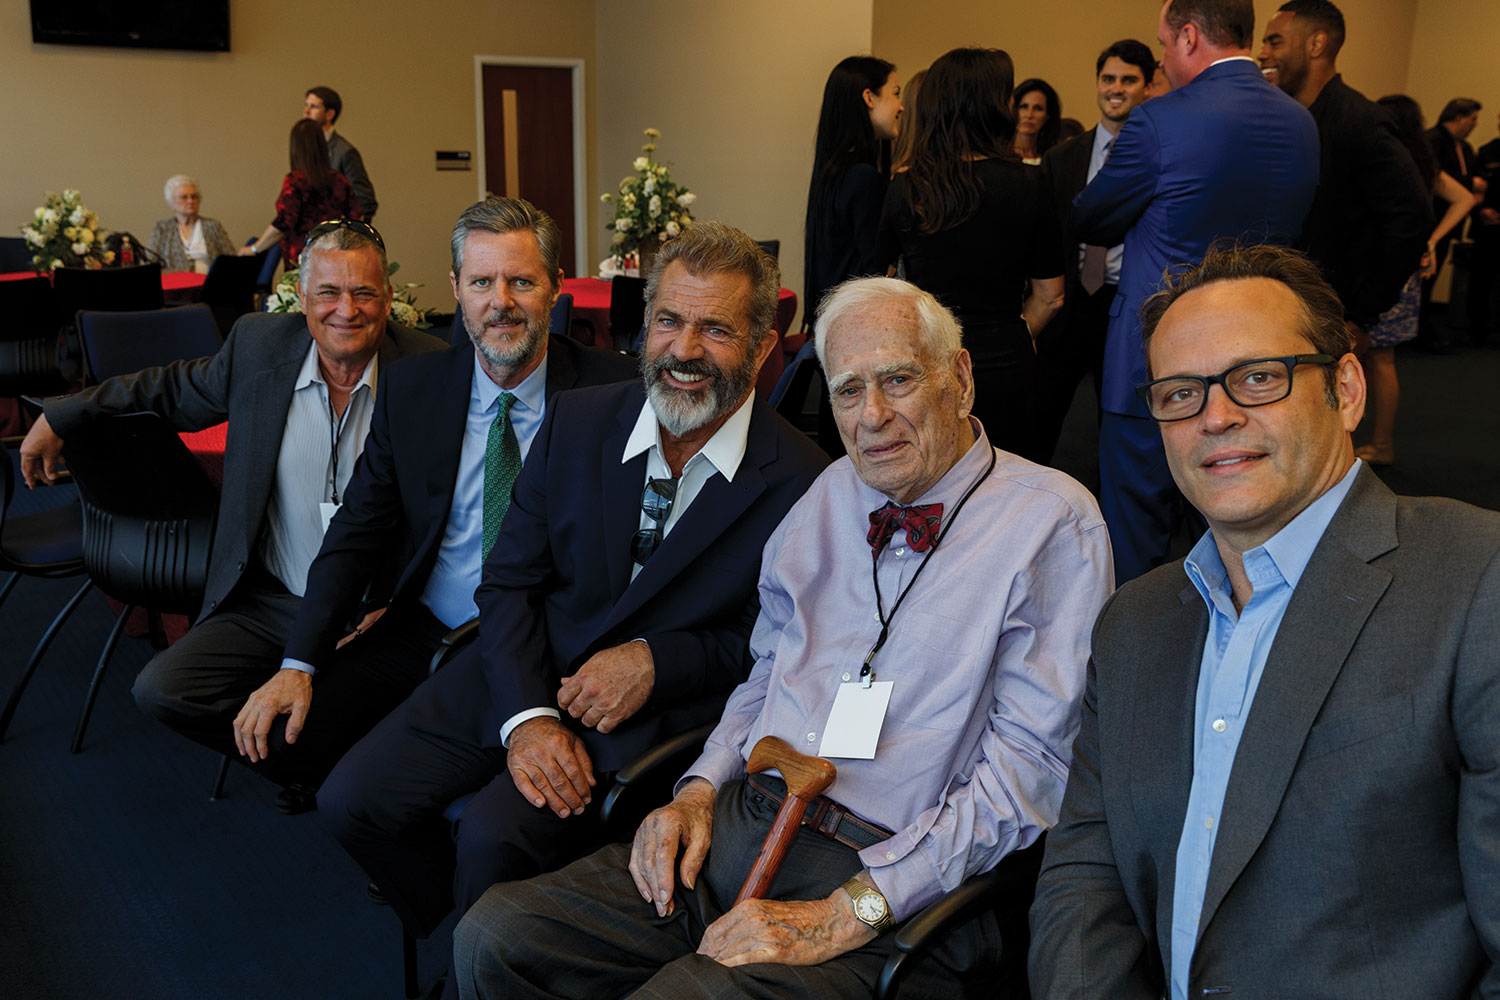 Jeffrey Rogers, President Jerry Falwell, Mel Gibson, George Rogers, and Vince Vaughn.